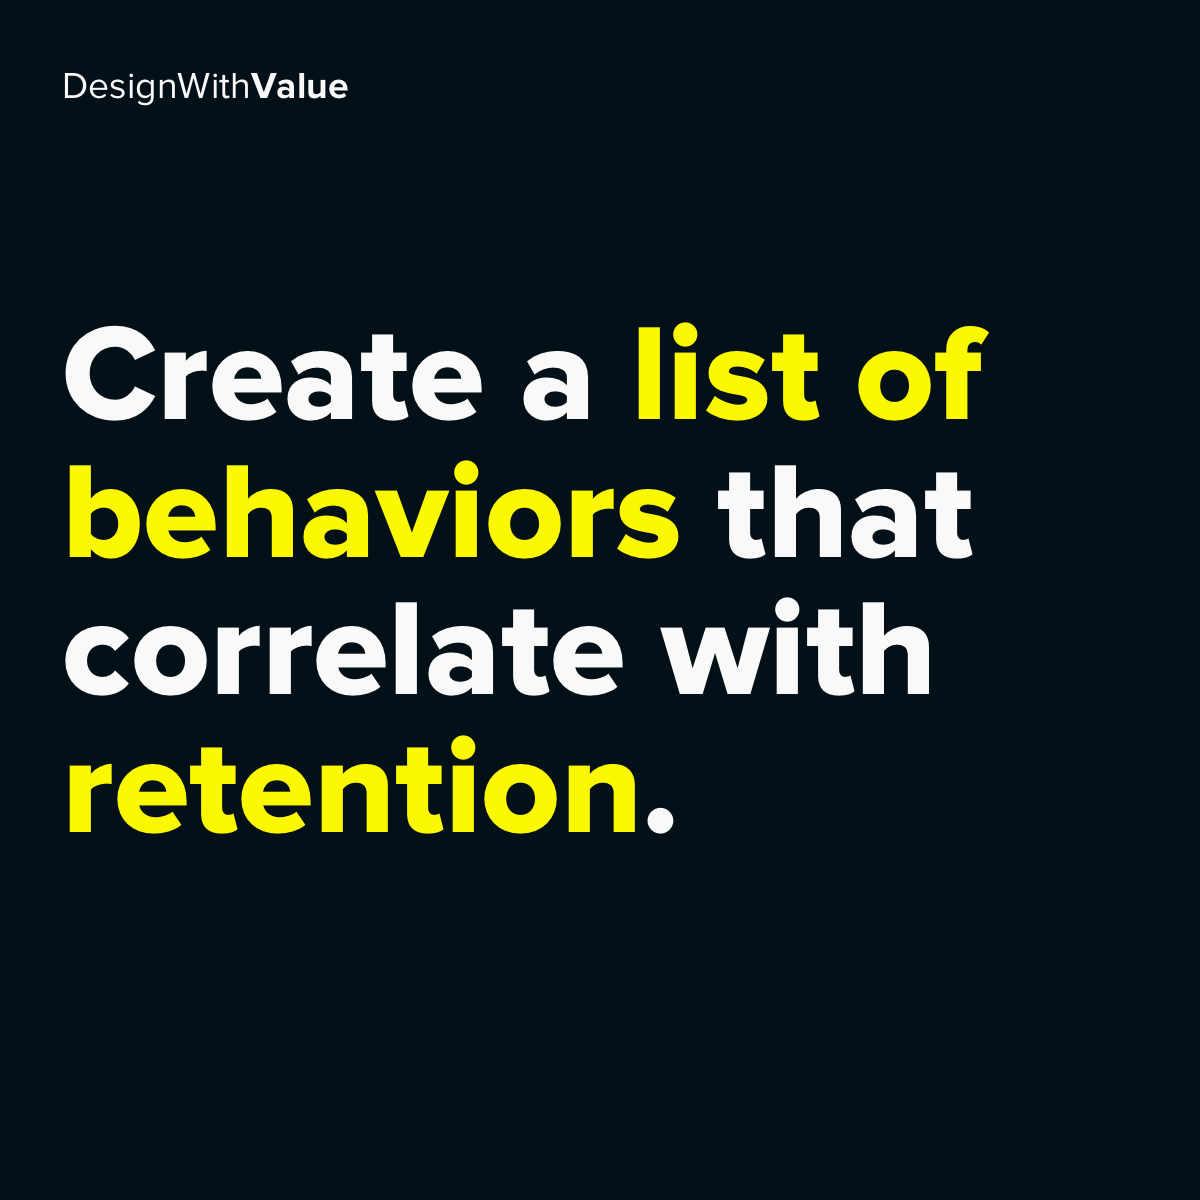 Create a list of behaviors that correlate with retention.